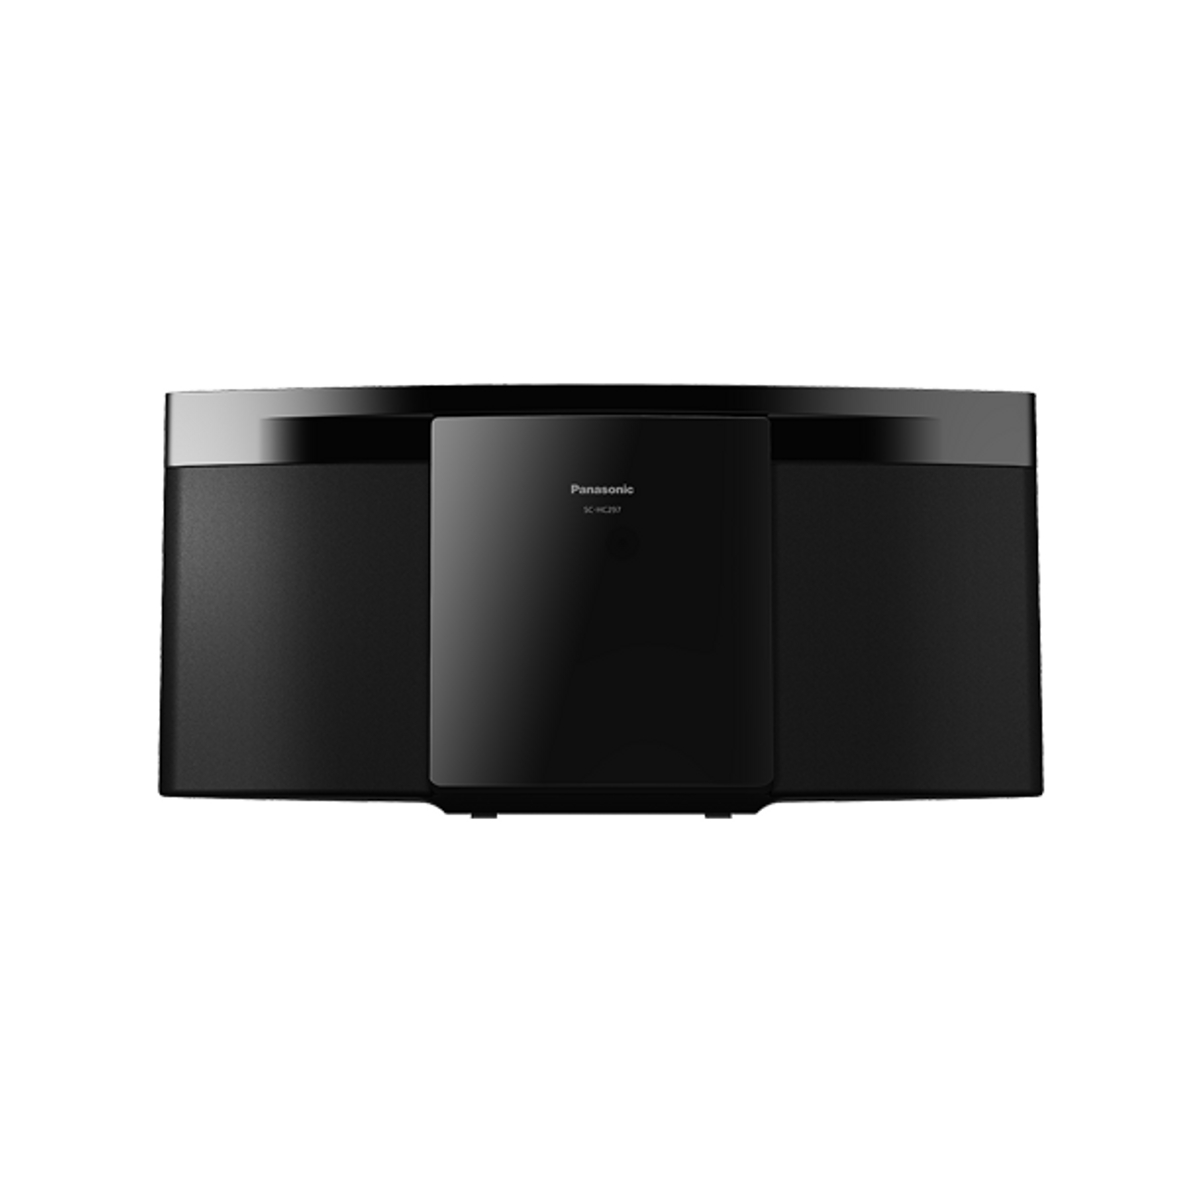 Panasonic Schc297ebk Micro Hi Fi System 20watt Power Black